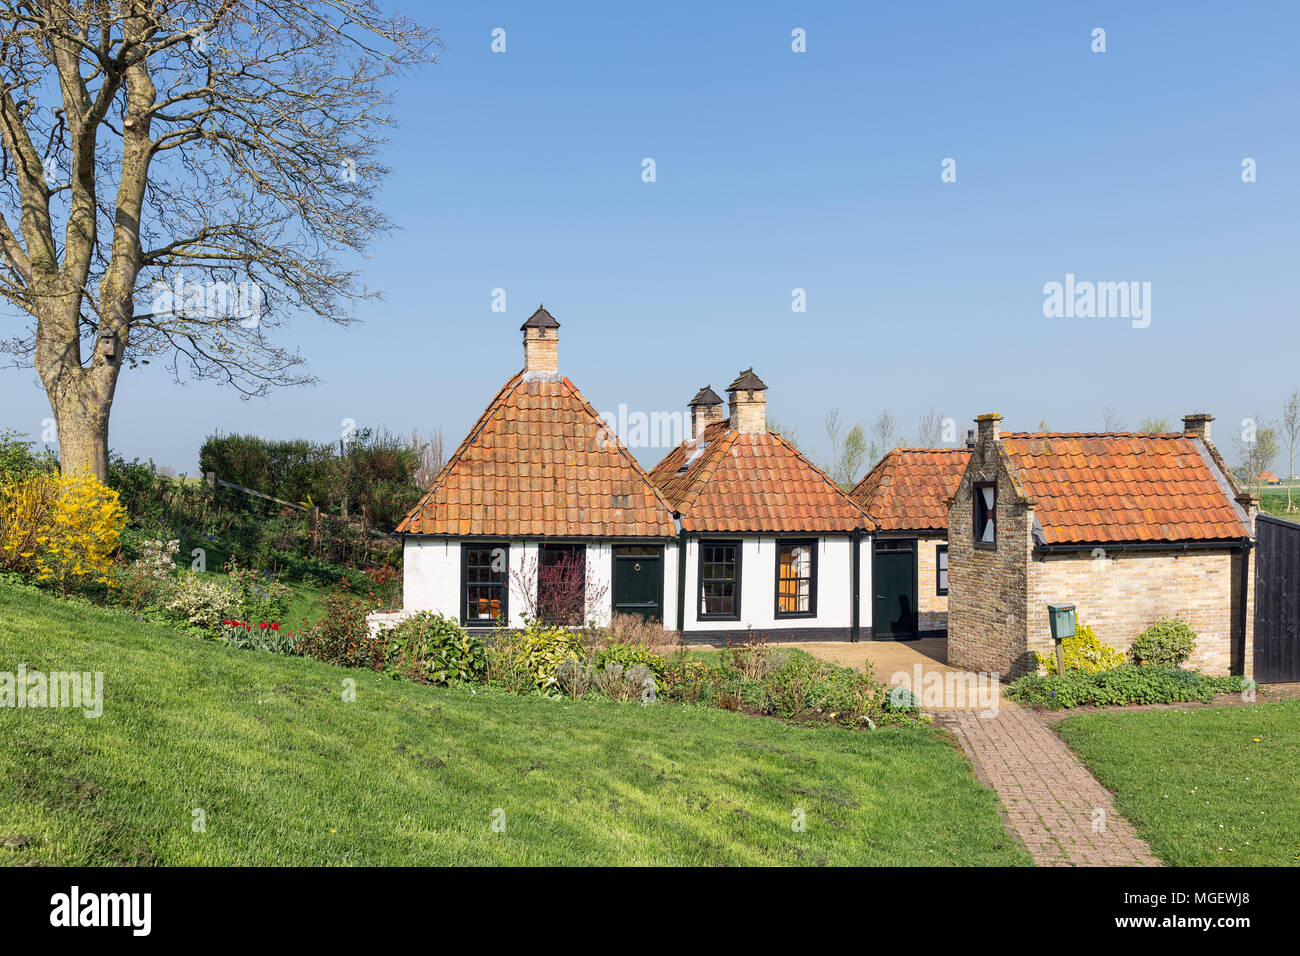 Tradtional Dutch houses near dike for ptotection to the sea - Stock Image